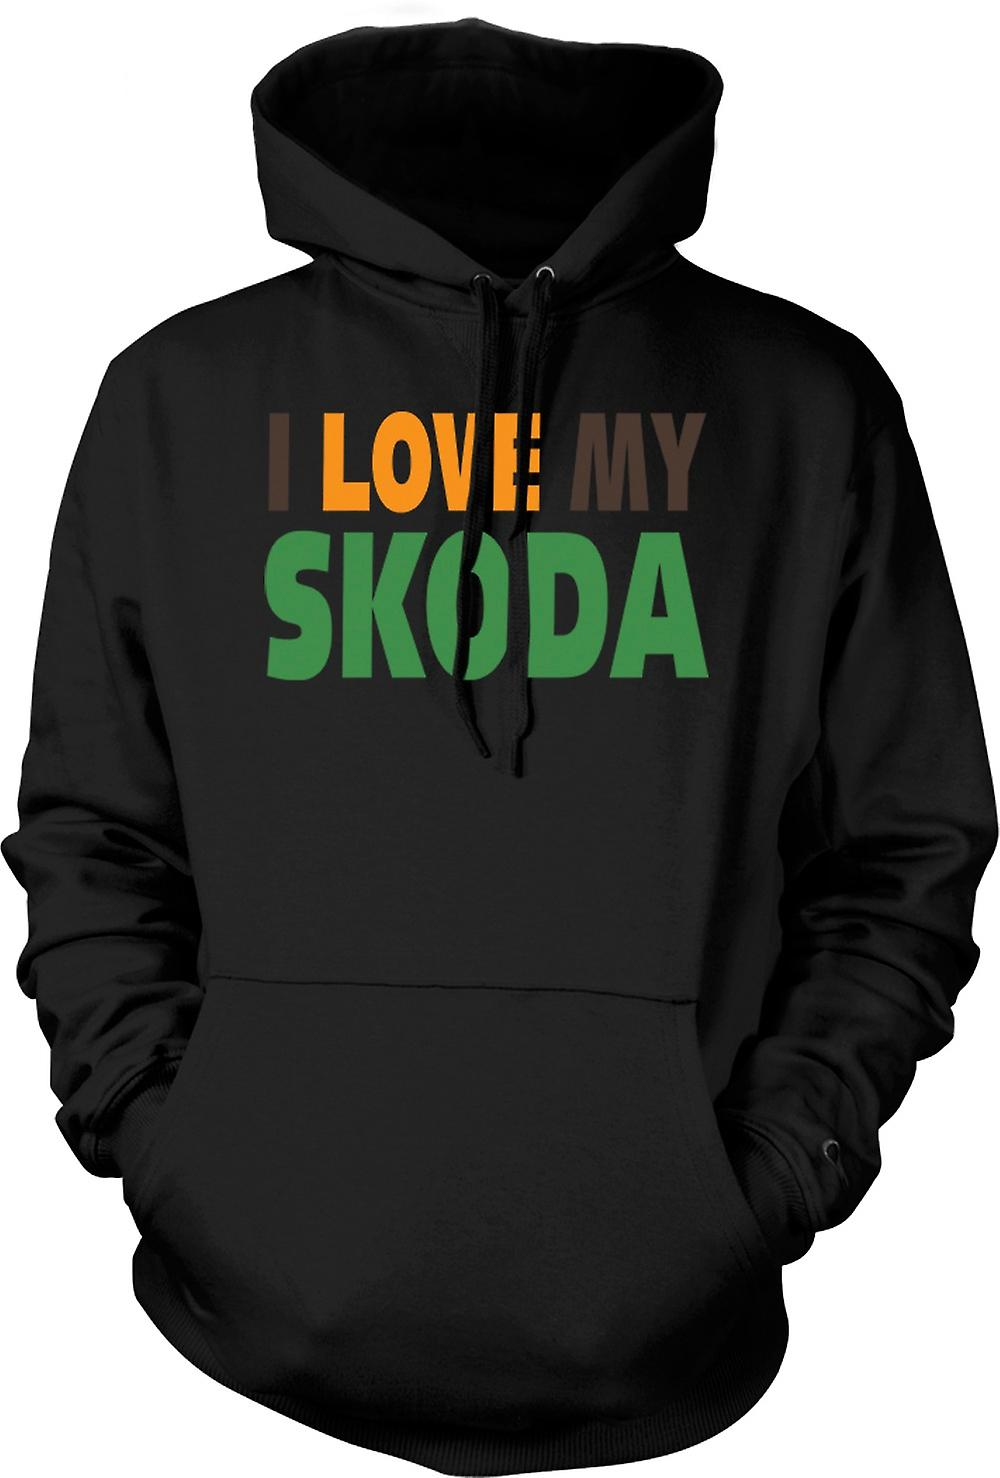 Kids Hoodie - I Love My Skoda - Car Enthusiast